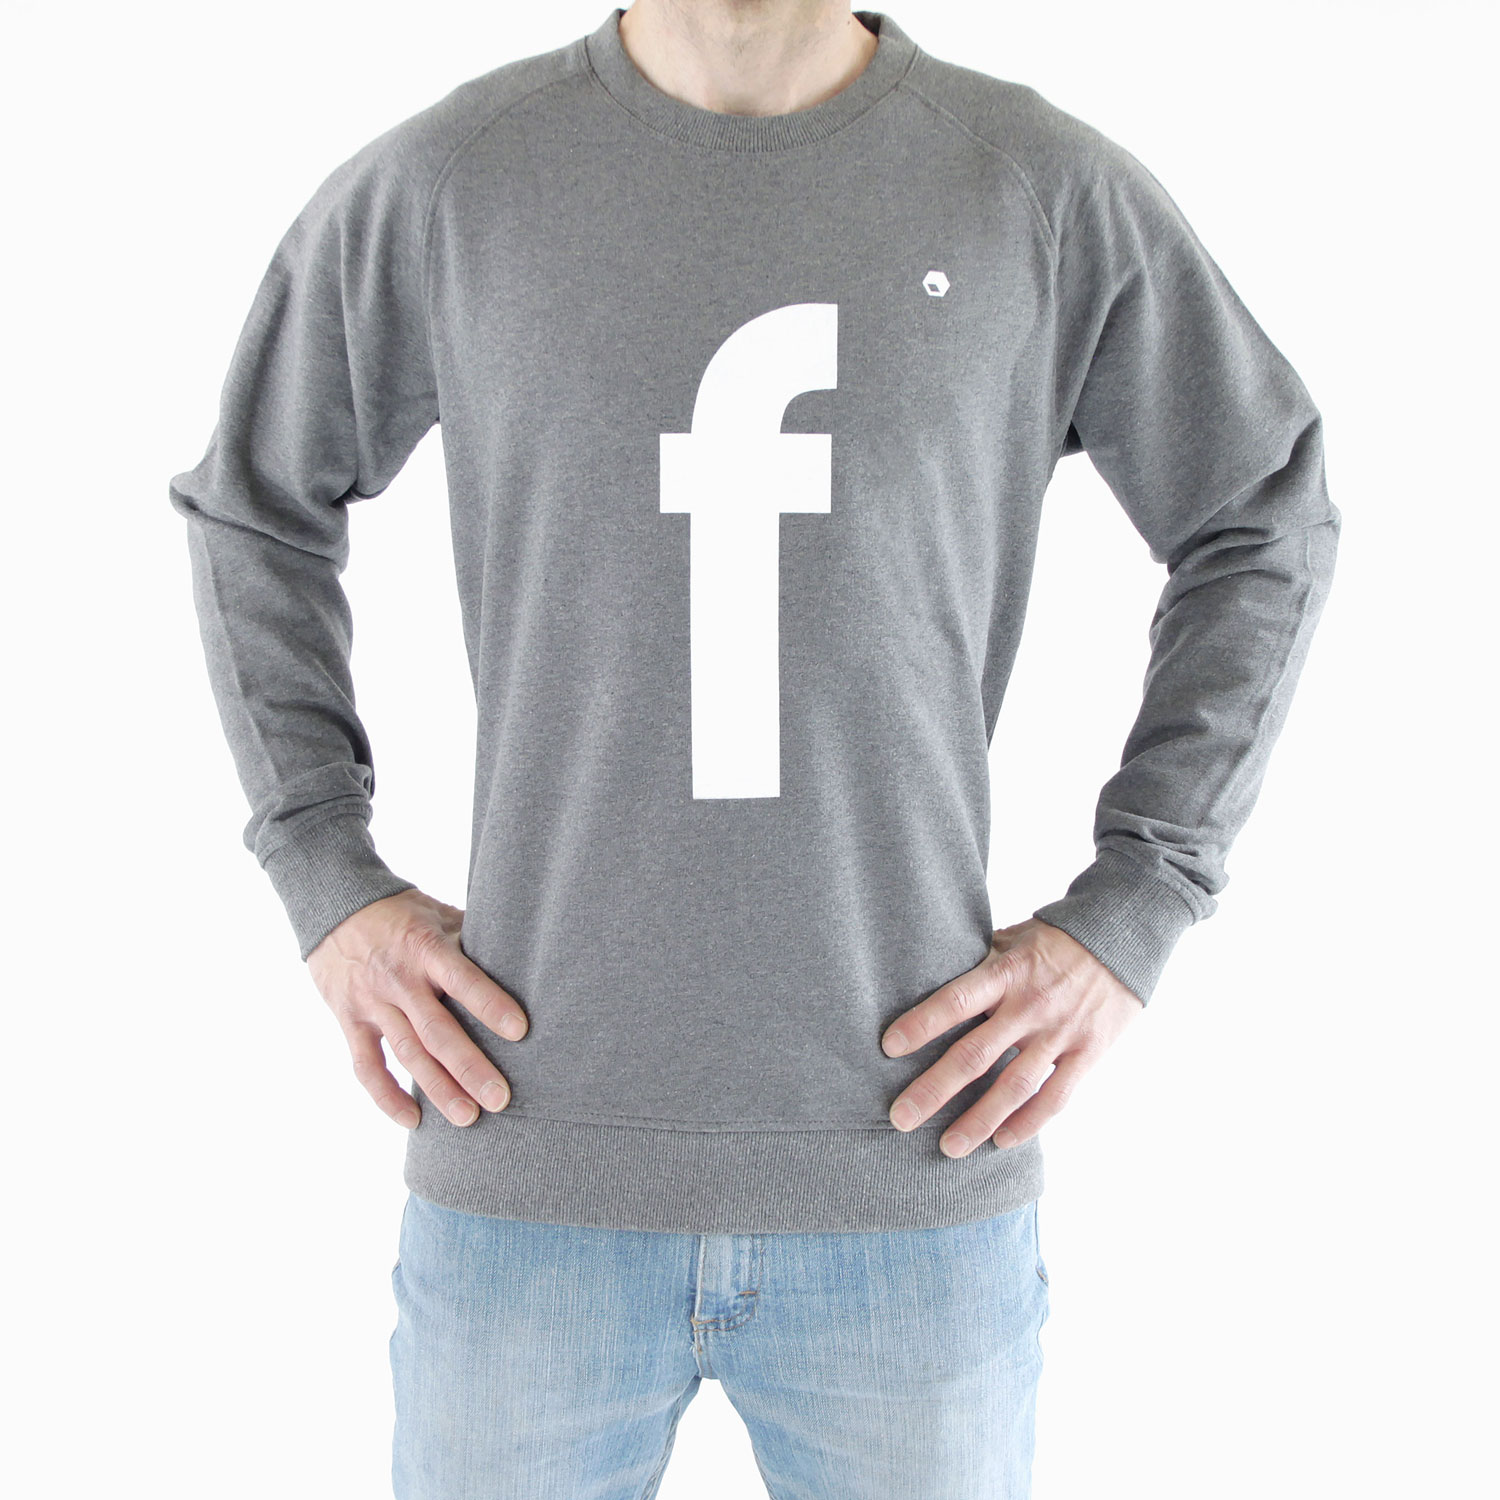 Flathold-apparel-sweat-f-grey